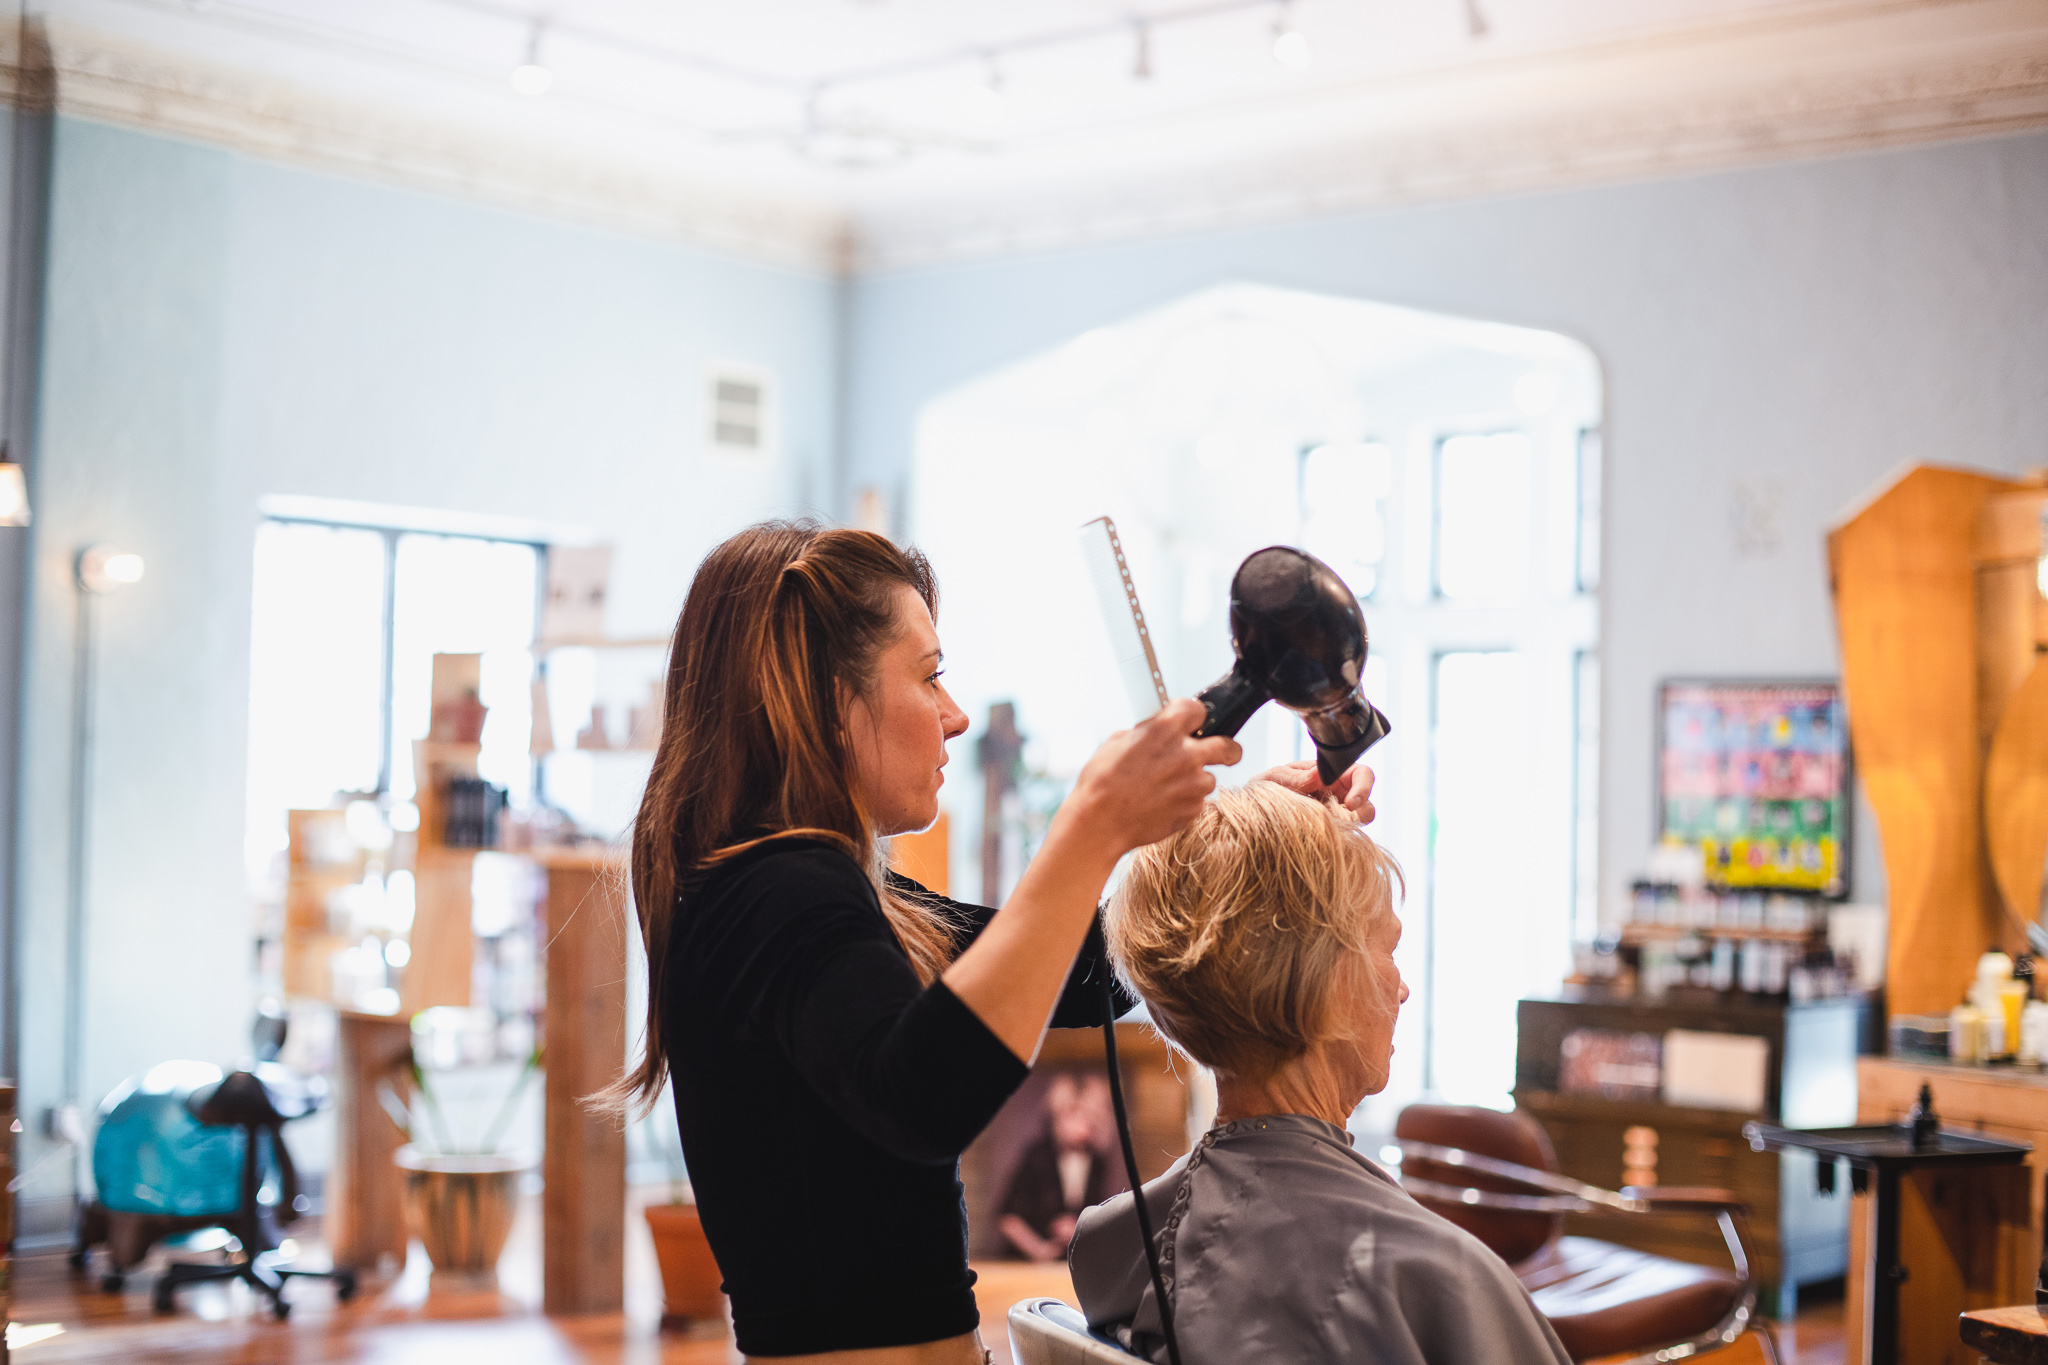 Book a consult, hair or styling appointment at our salon -